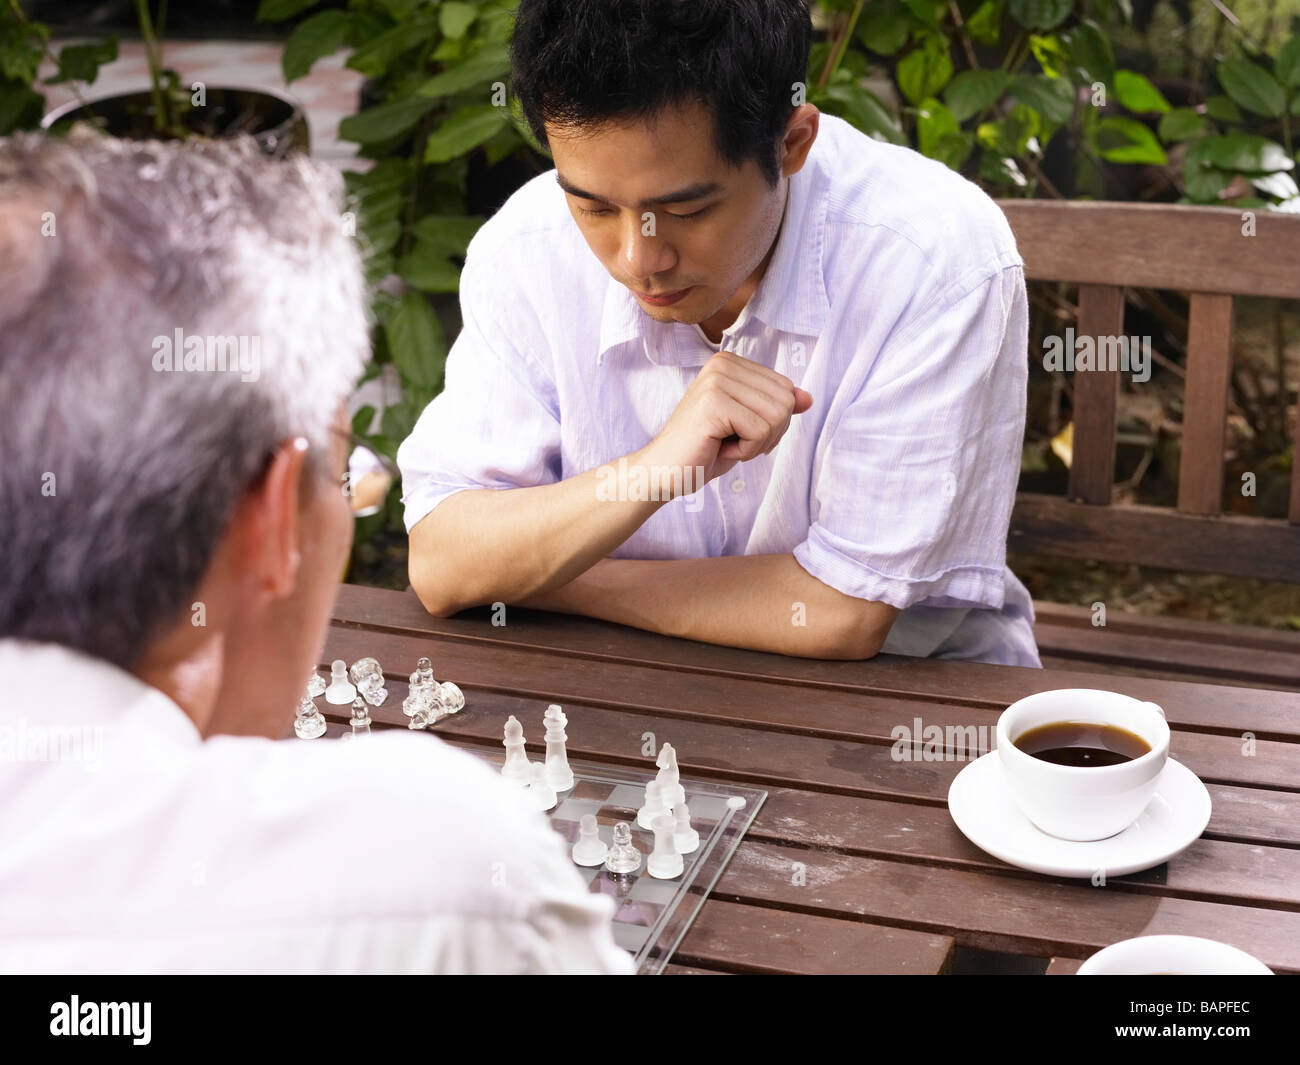 father and son playing chess game at garden - Stock Image